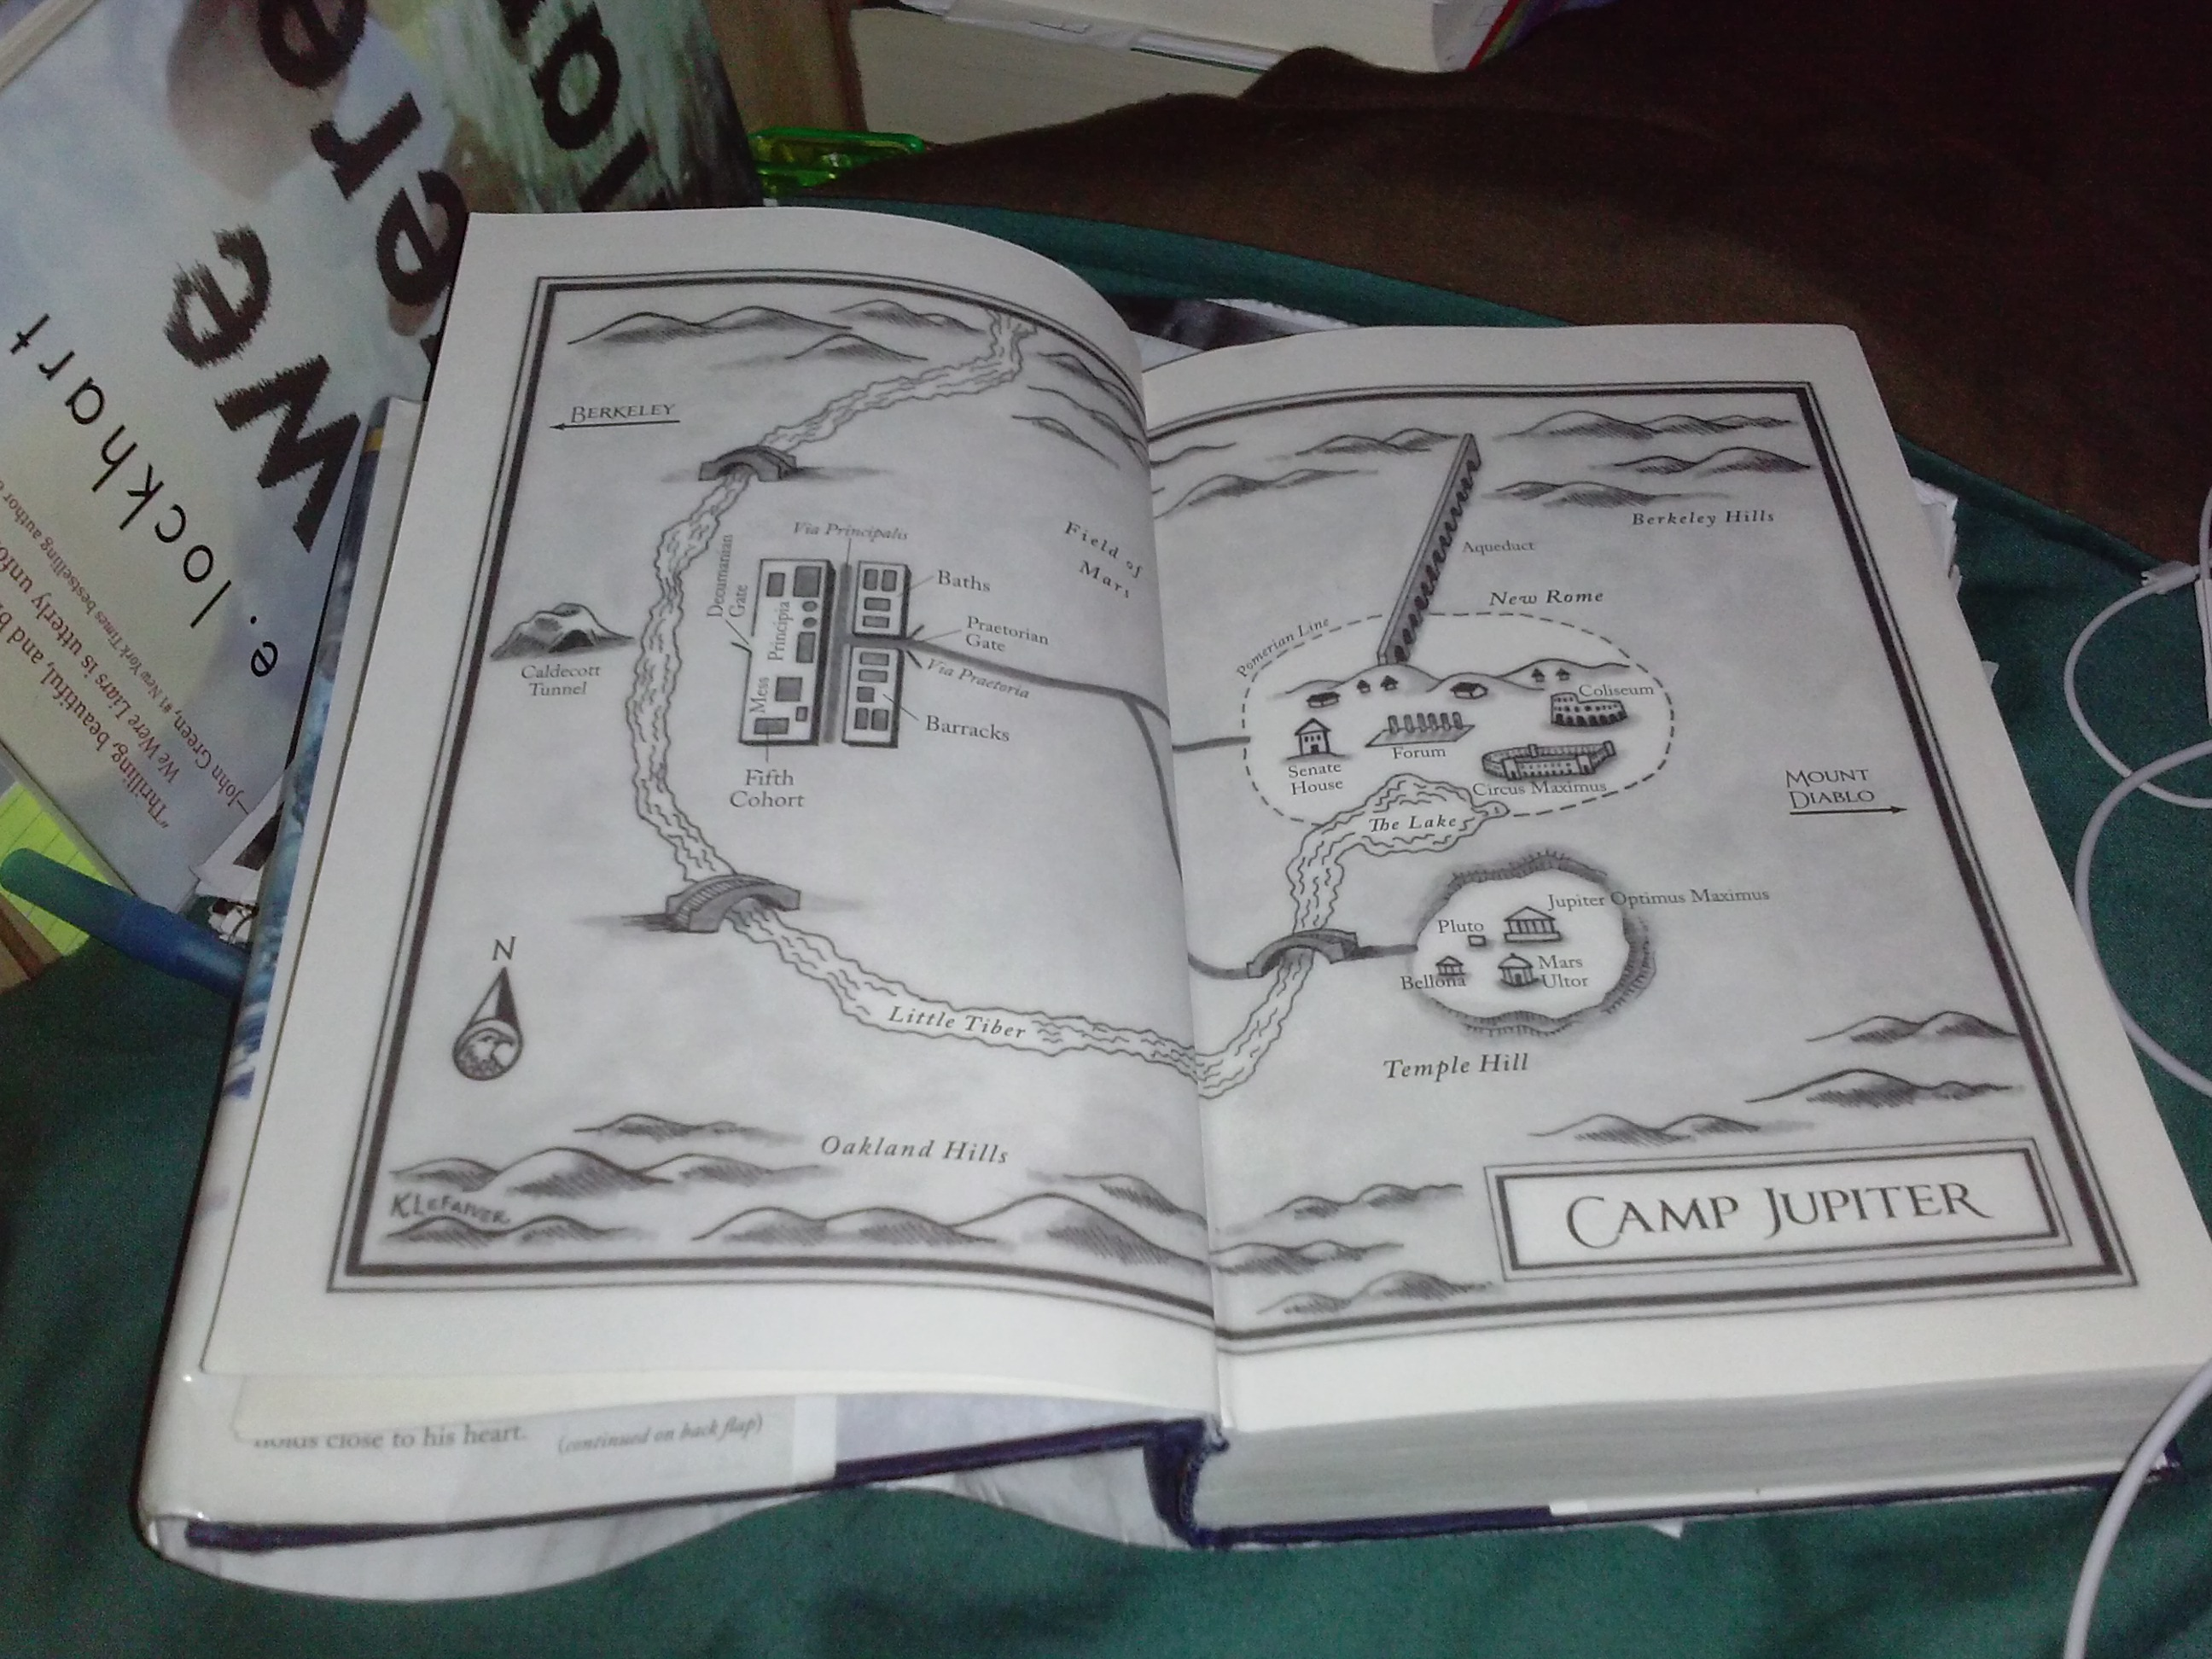 The son of neptune heroes of olympus series book review theres a map at the beginning too image gumiabroncs Gallery